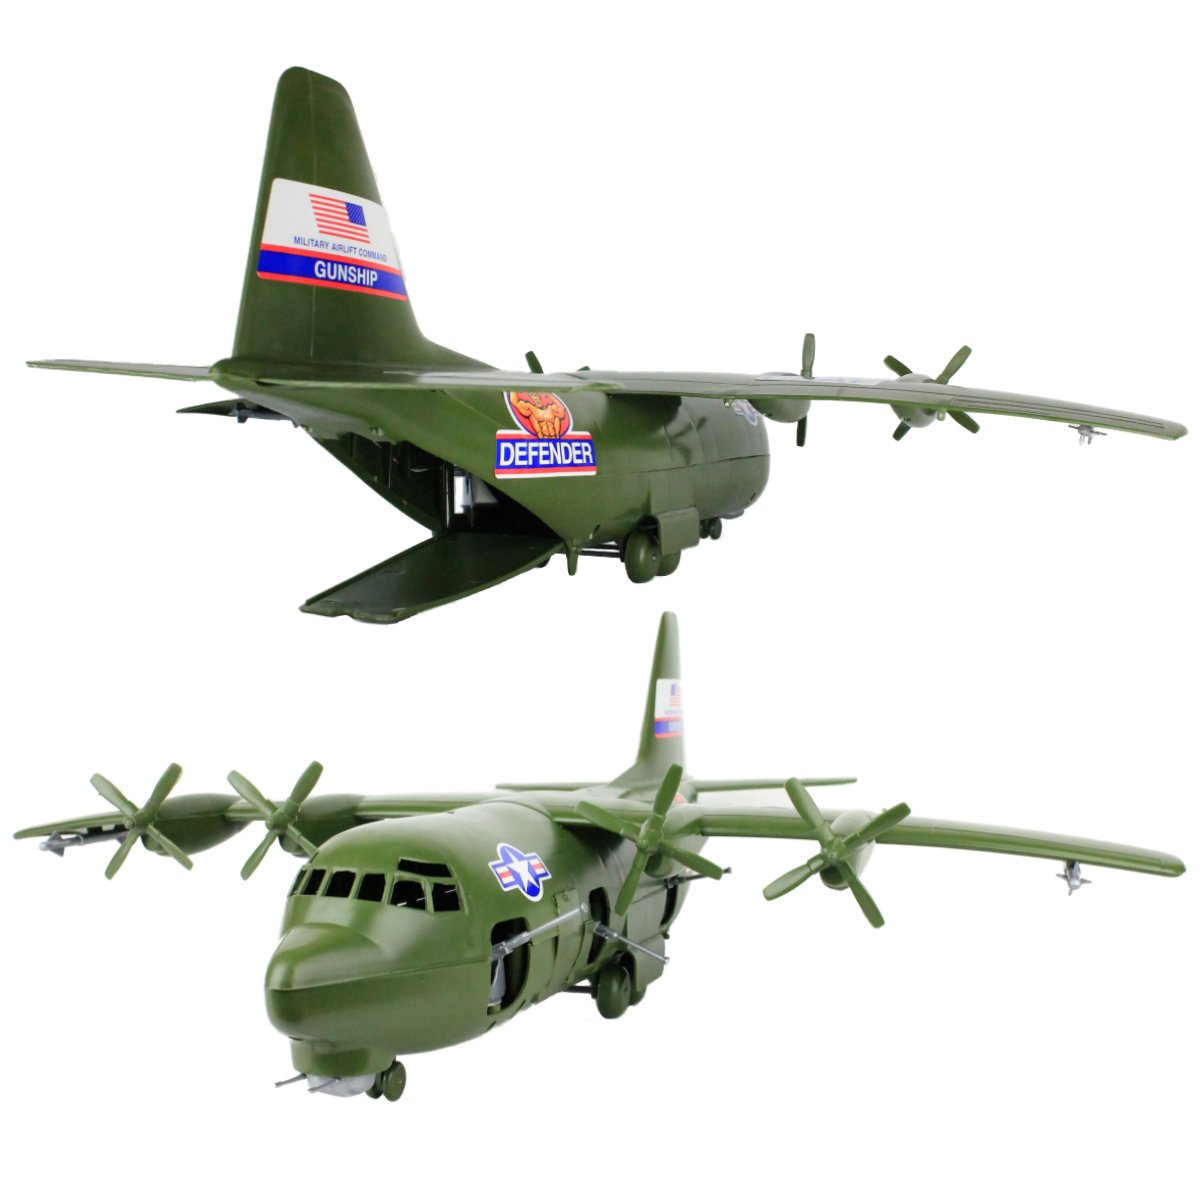 TimMee Plastic Army Men C130 Playset -27pc Giant Military Airplane Made in USA by Tim Mee Toy (Image #4)